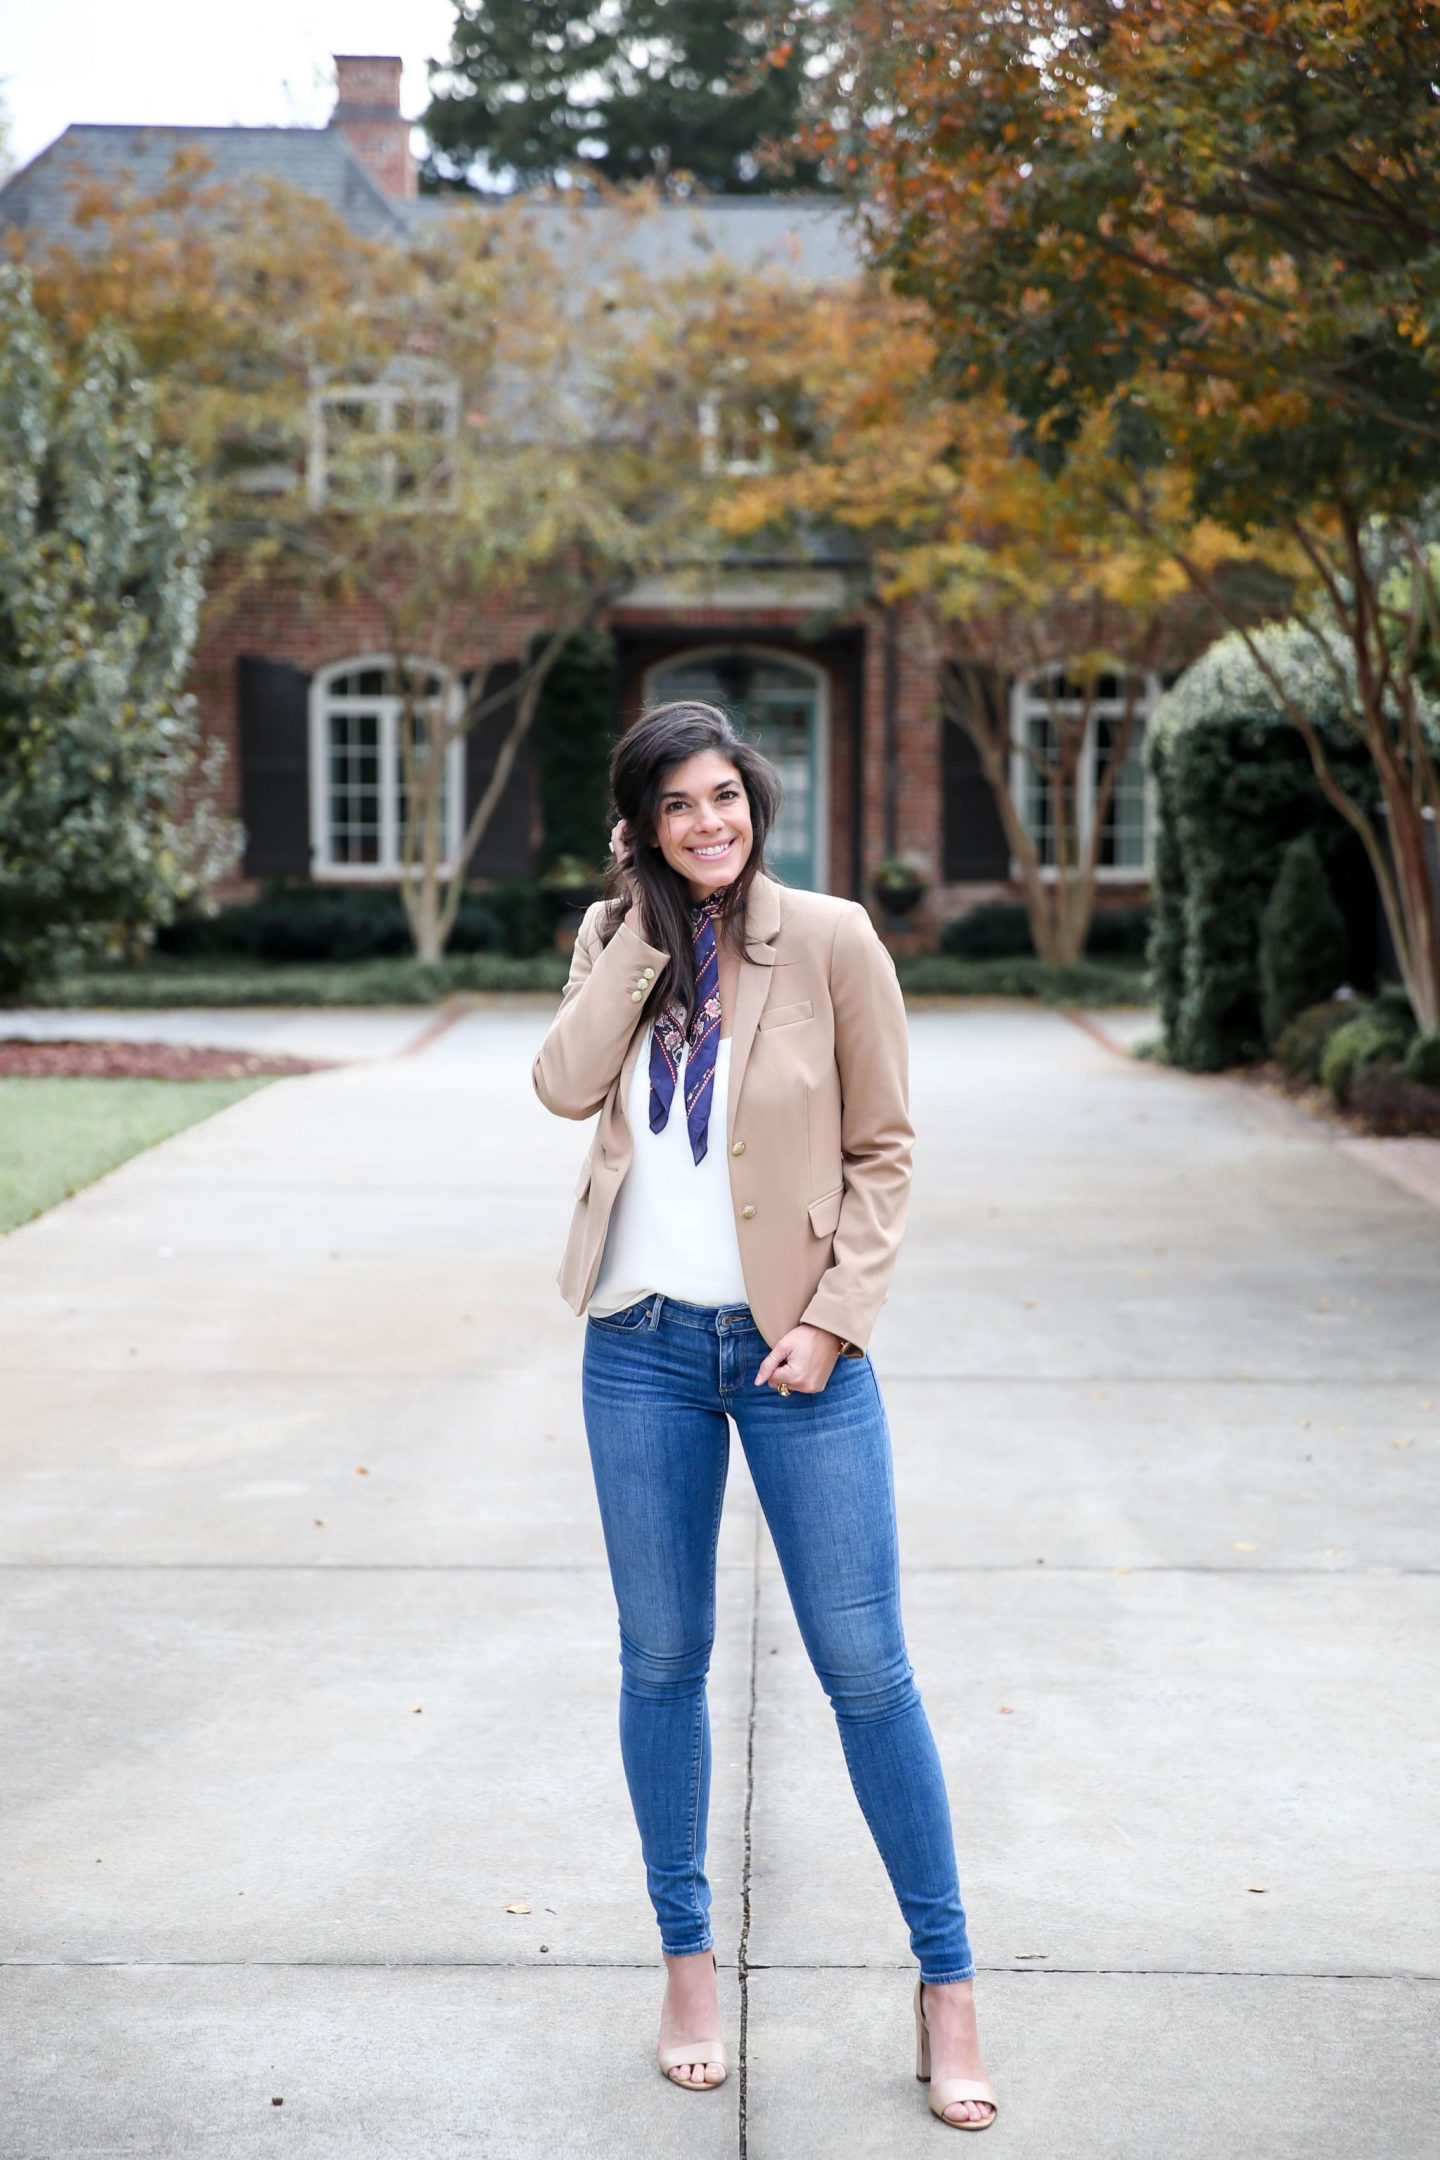 business casual outfit inspiration - Lauren Schwaiger style blog